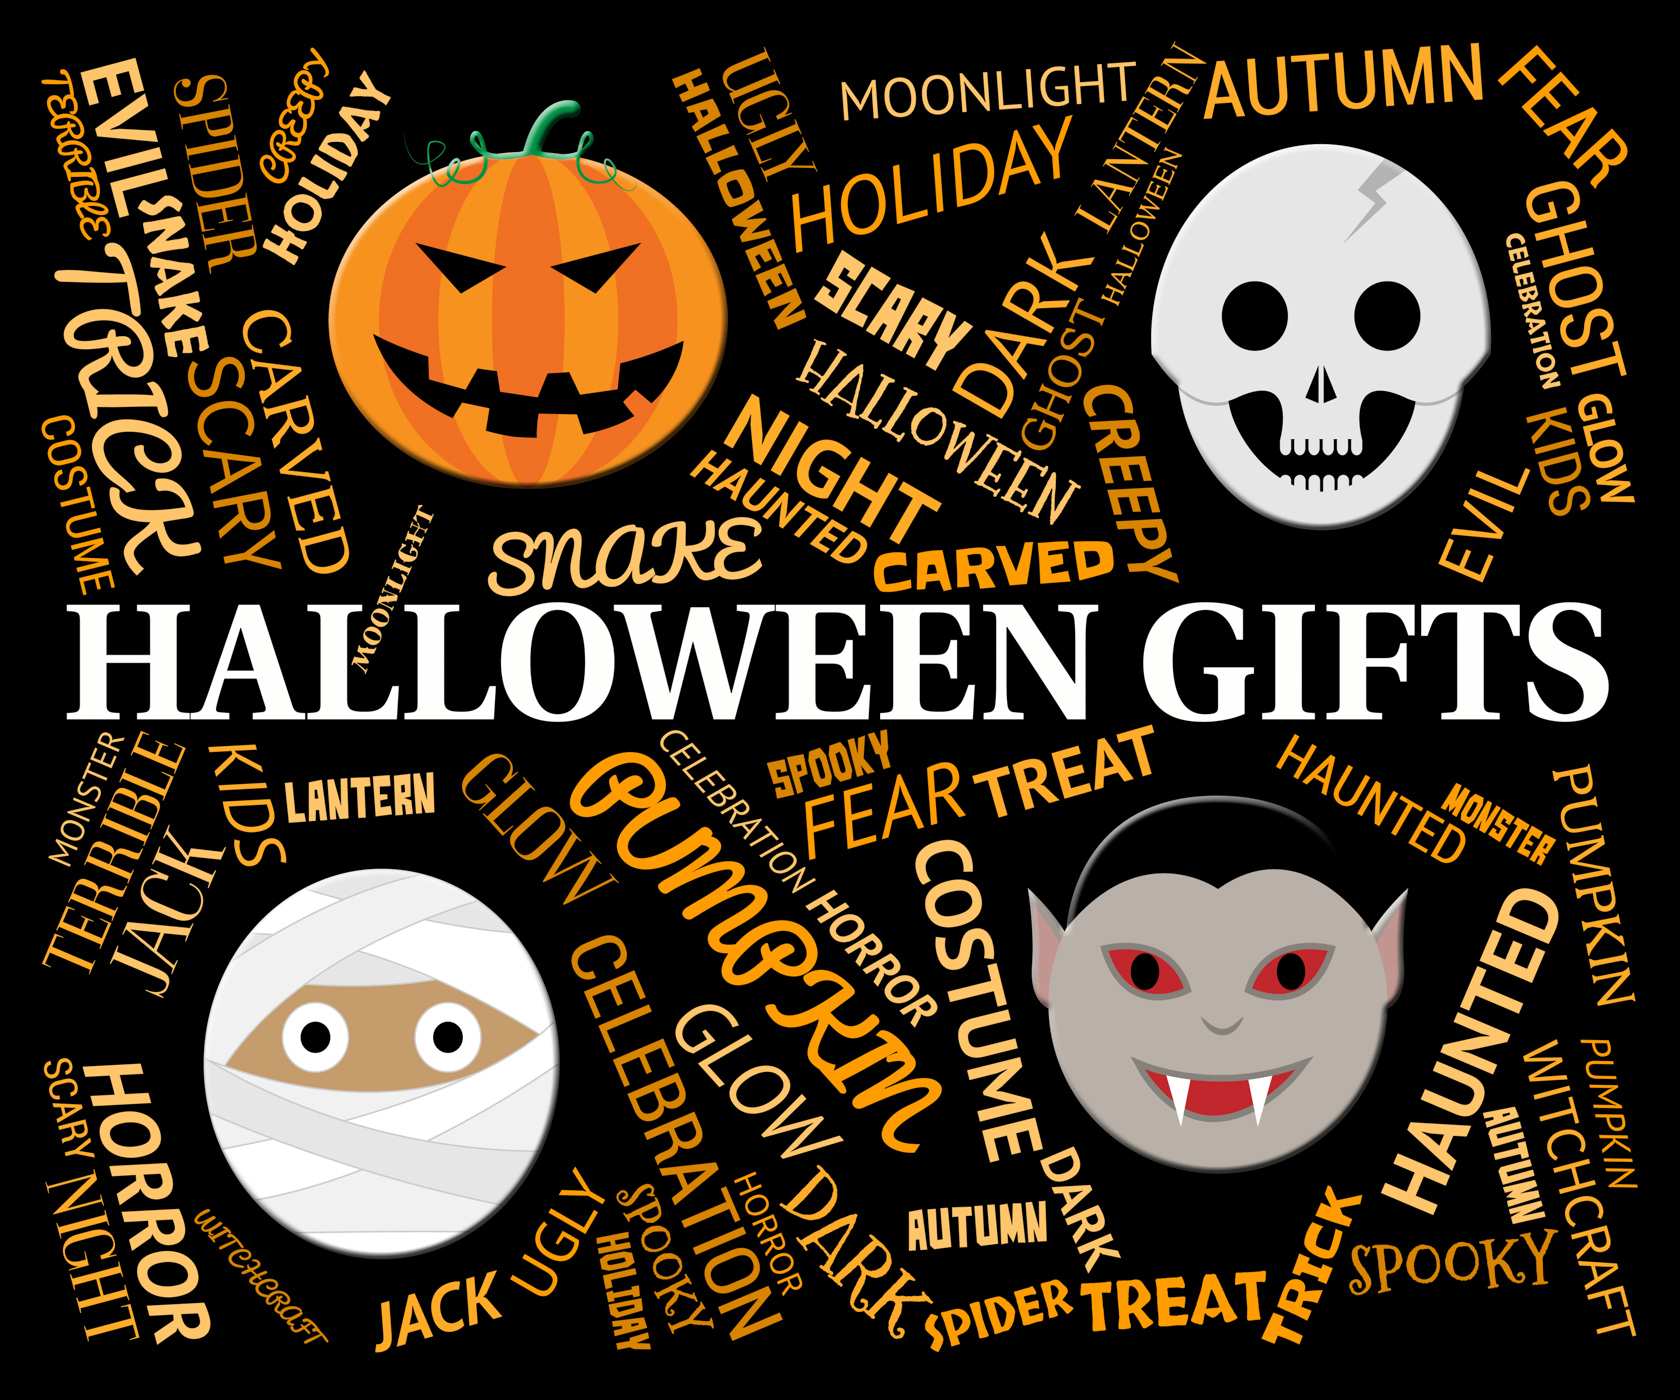 Halloween gifts indicates trick or treat and celebrate photo